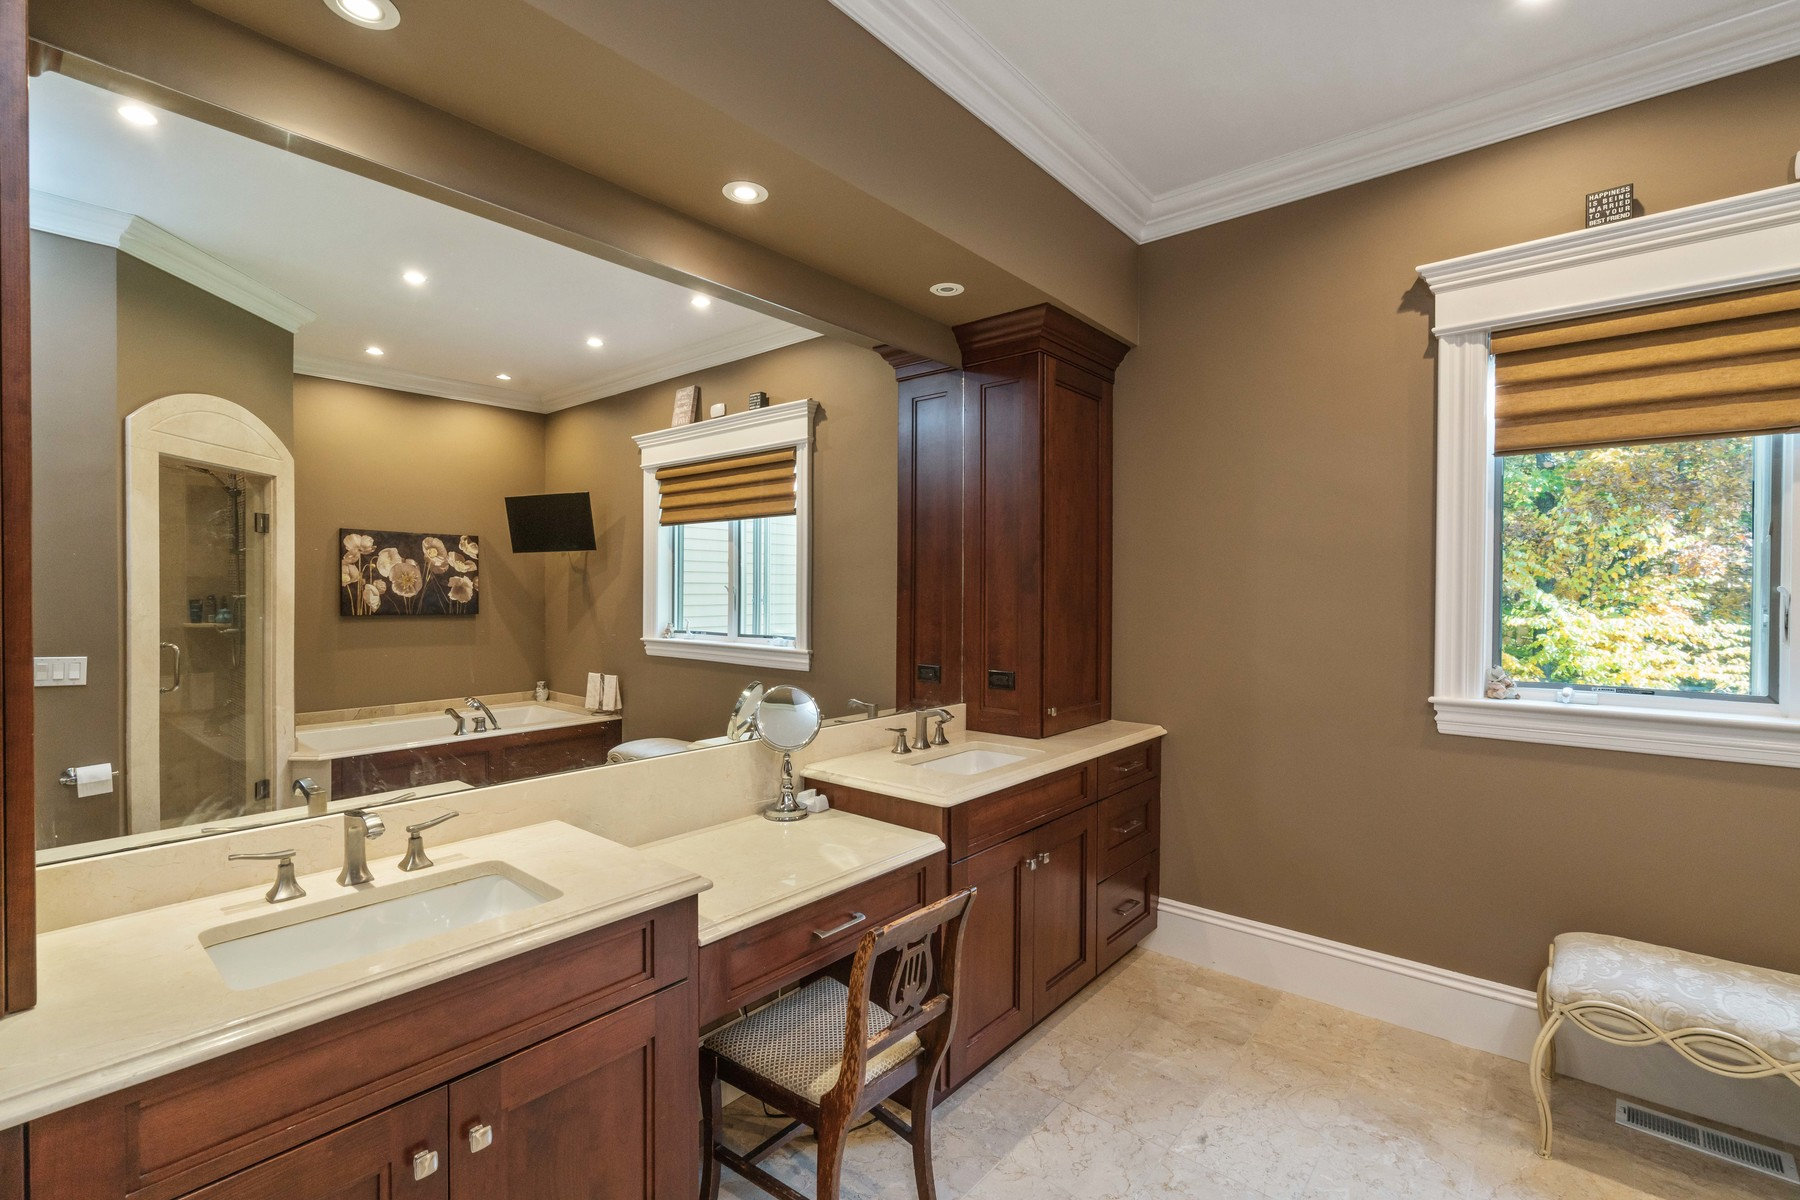 Property Of Masterful craftsmanship & attention to detail are evident throughout this impecc